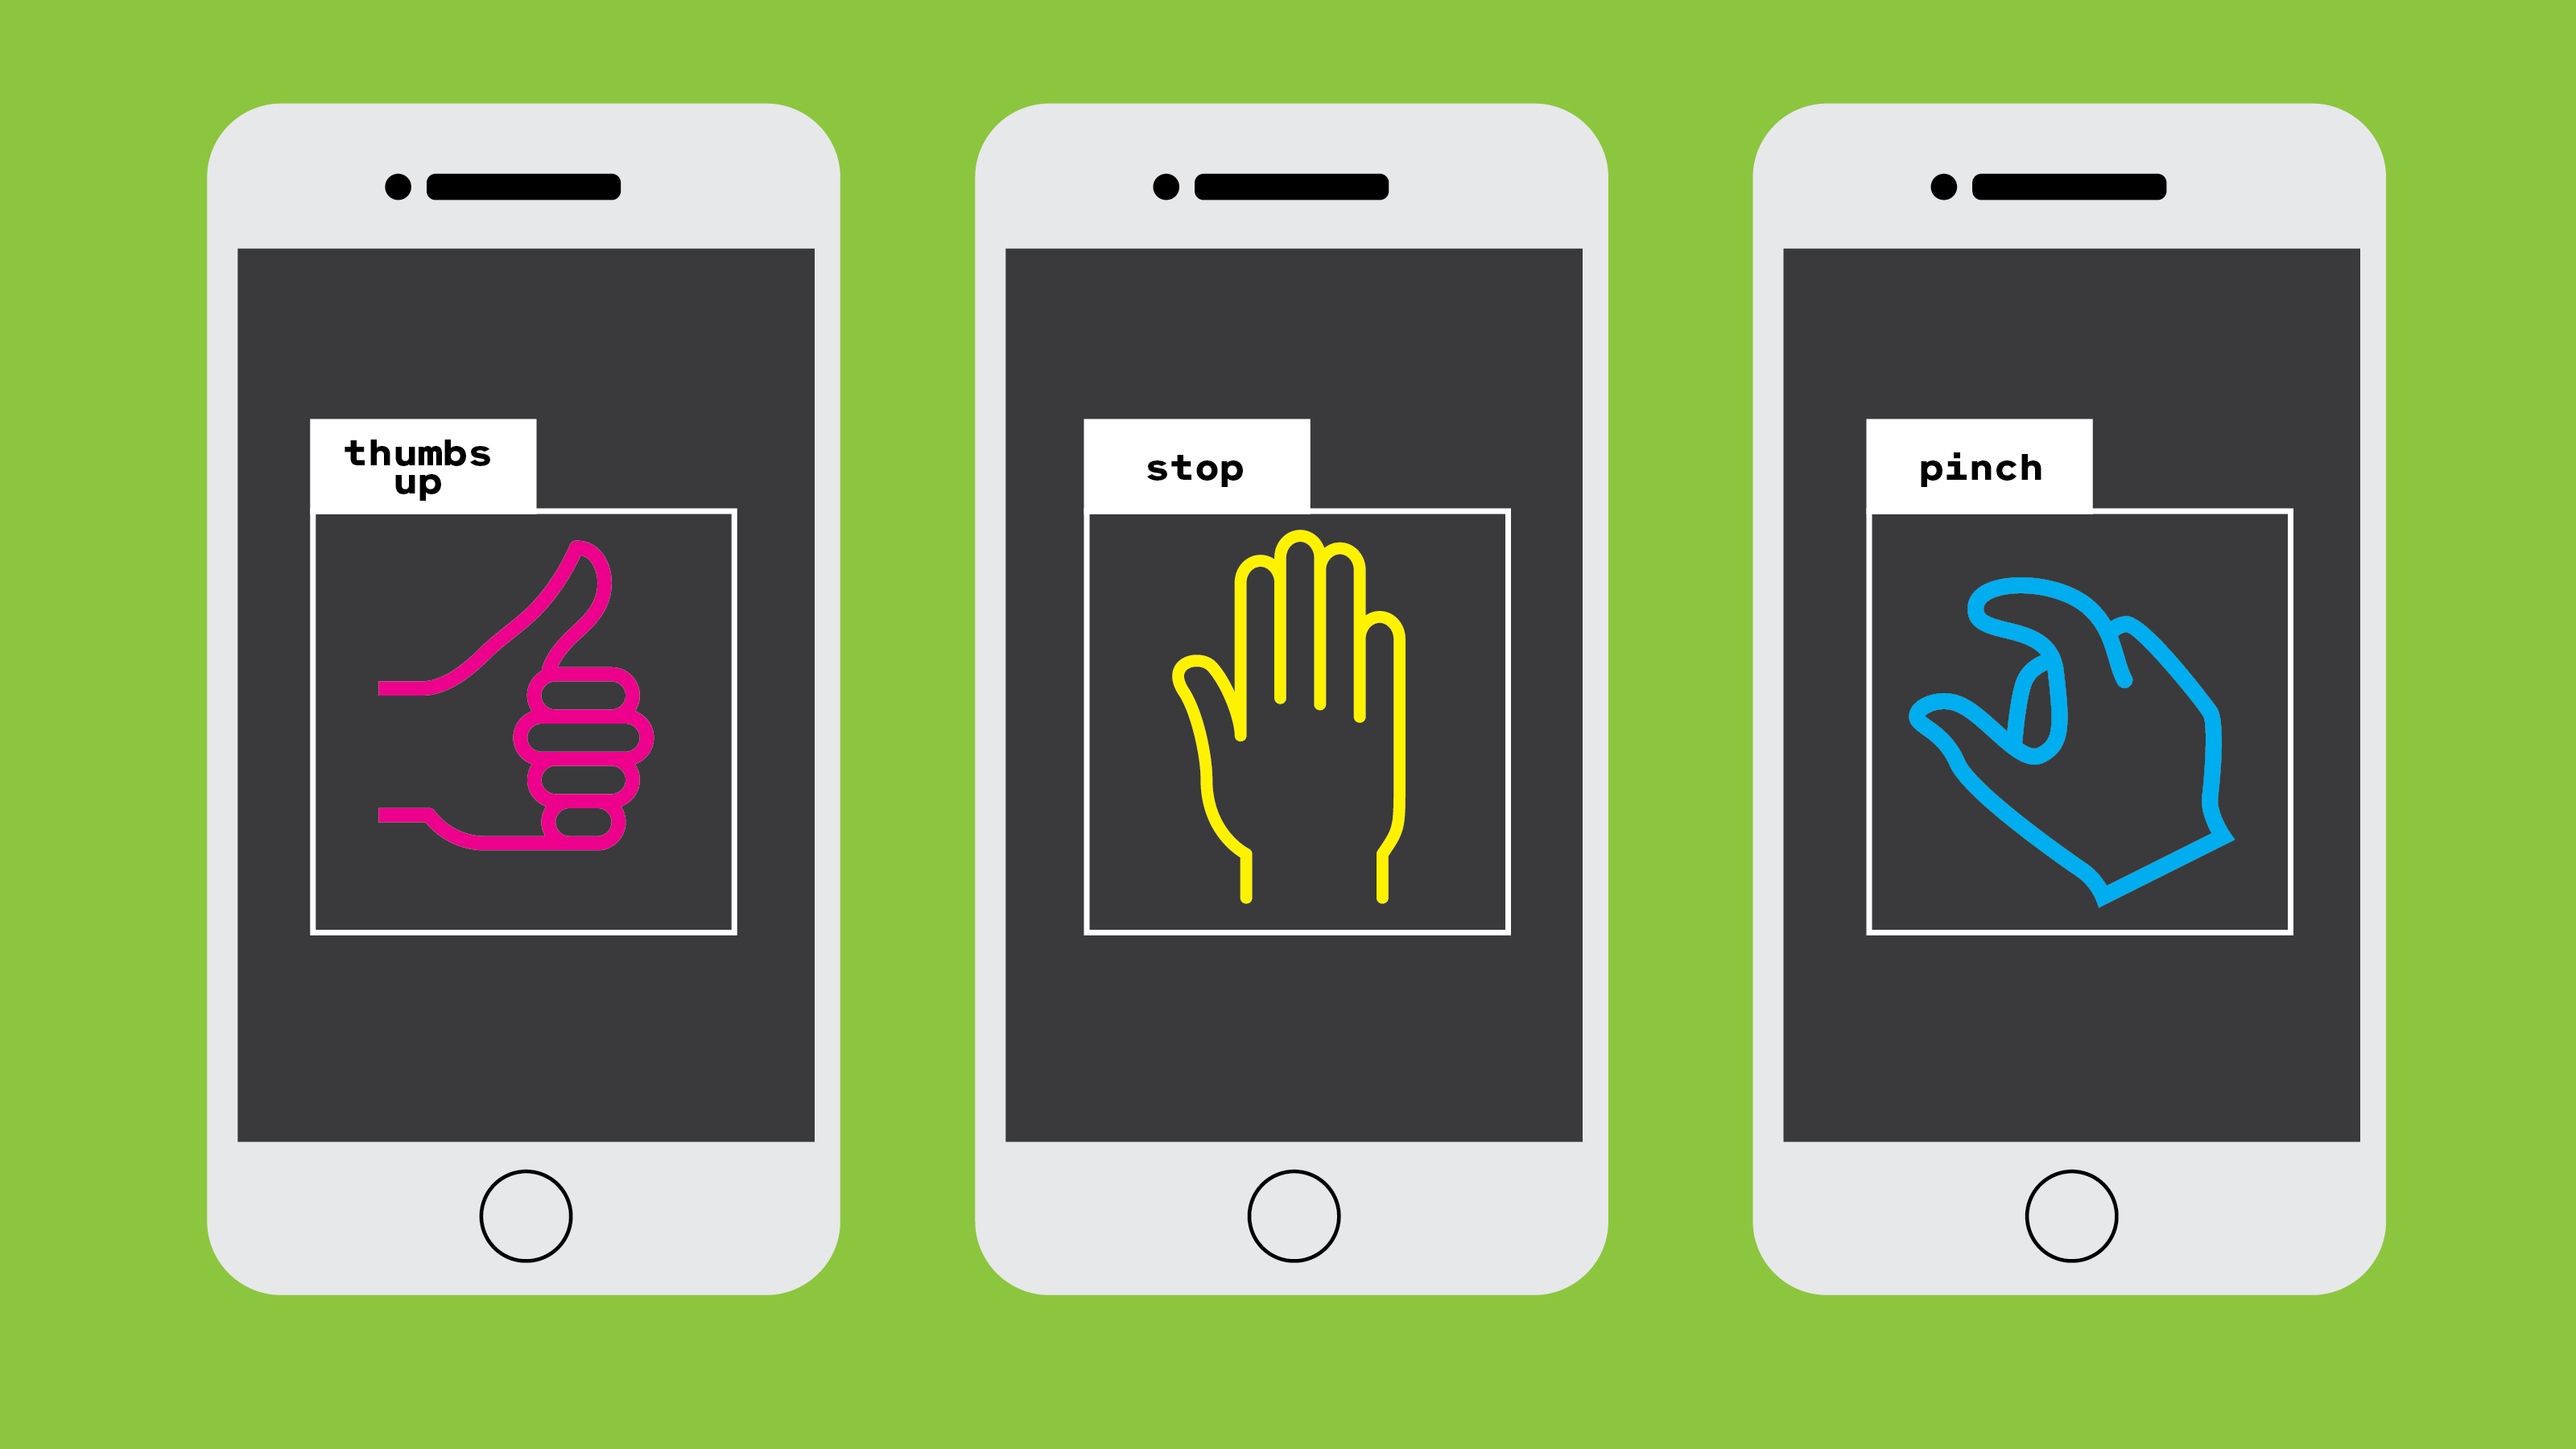 An image of hand gestures being recognized on a mobile phone